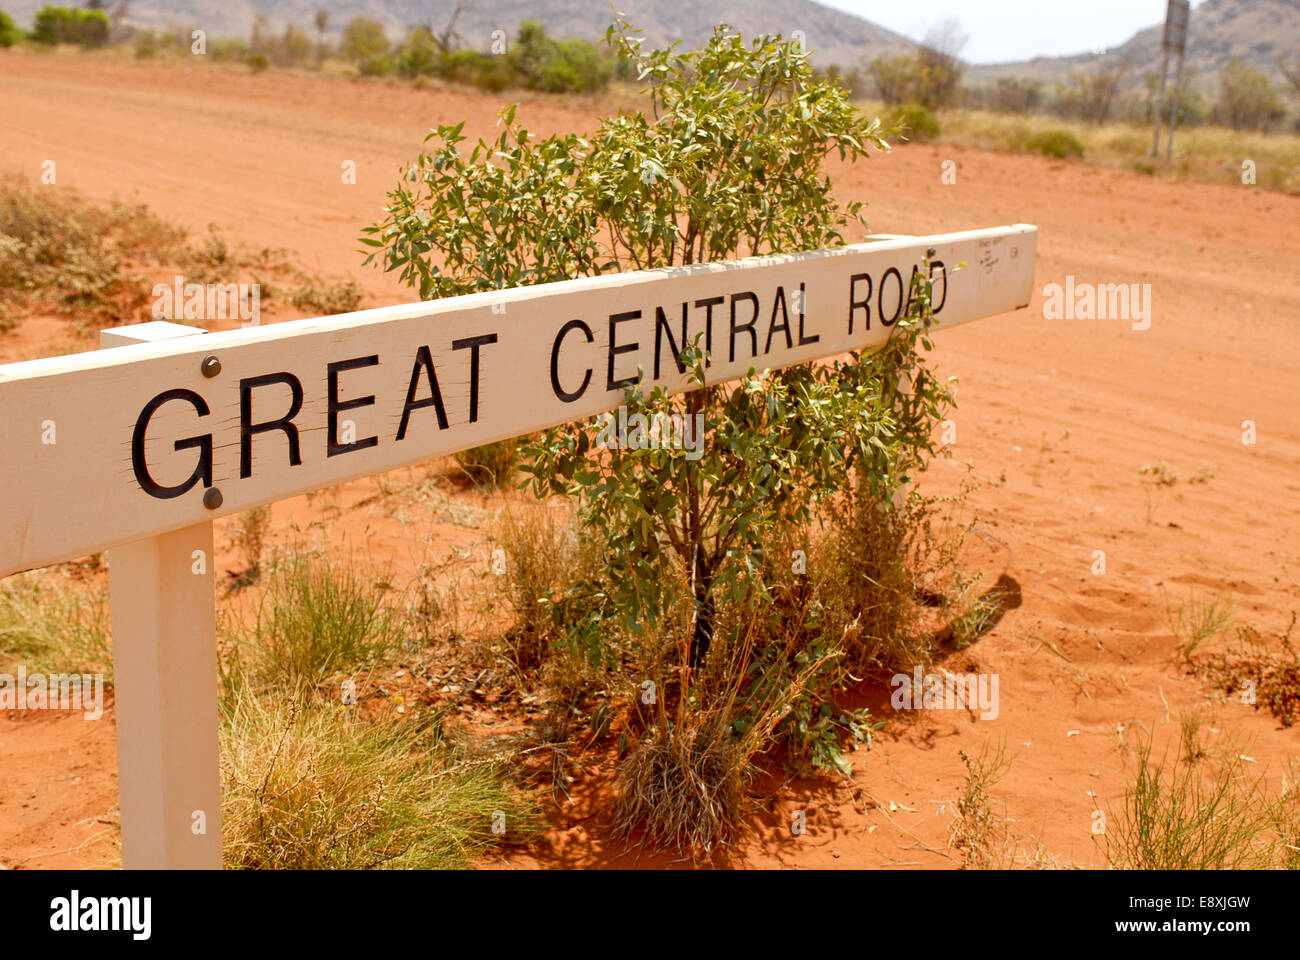 Streetsign  Great Central Road - Stock Image